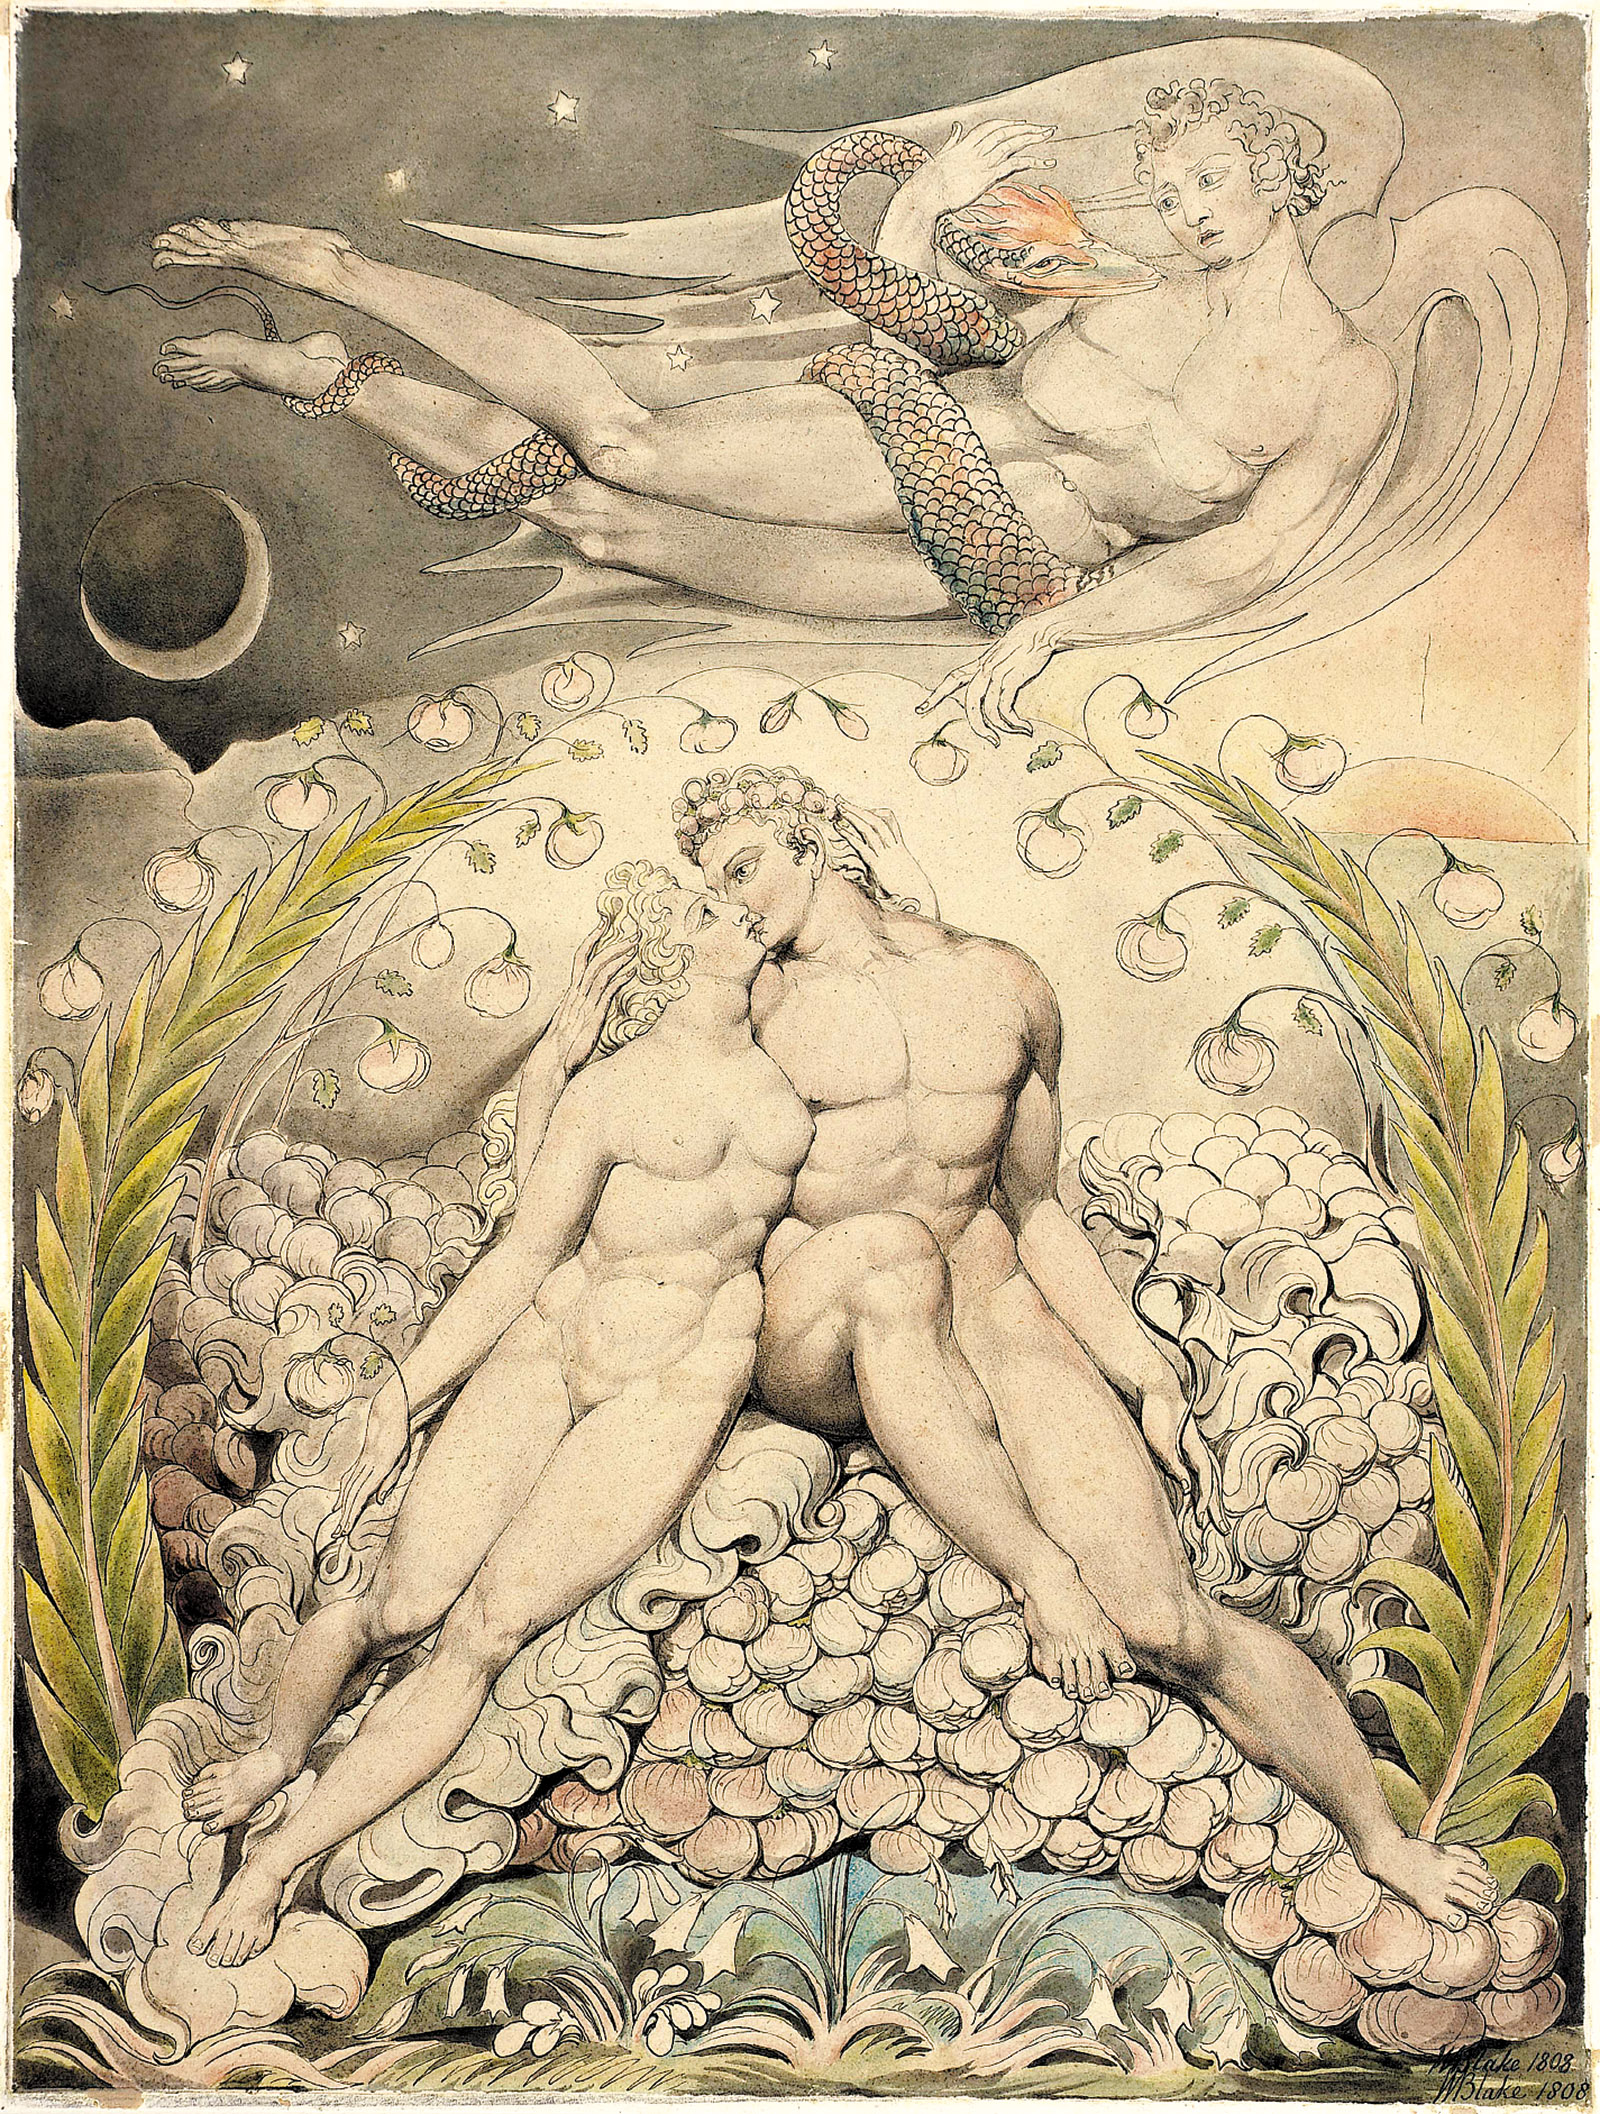 'Satan Watching the Caresses of Adam and Eve'; illustration by William Blake for John Milton's Paradise Lost, 1808